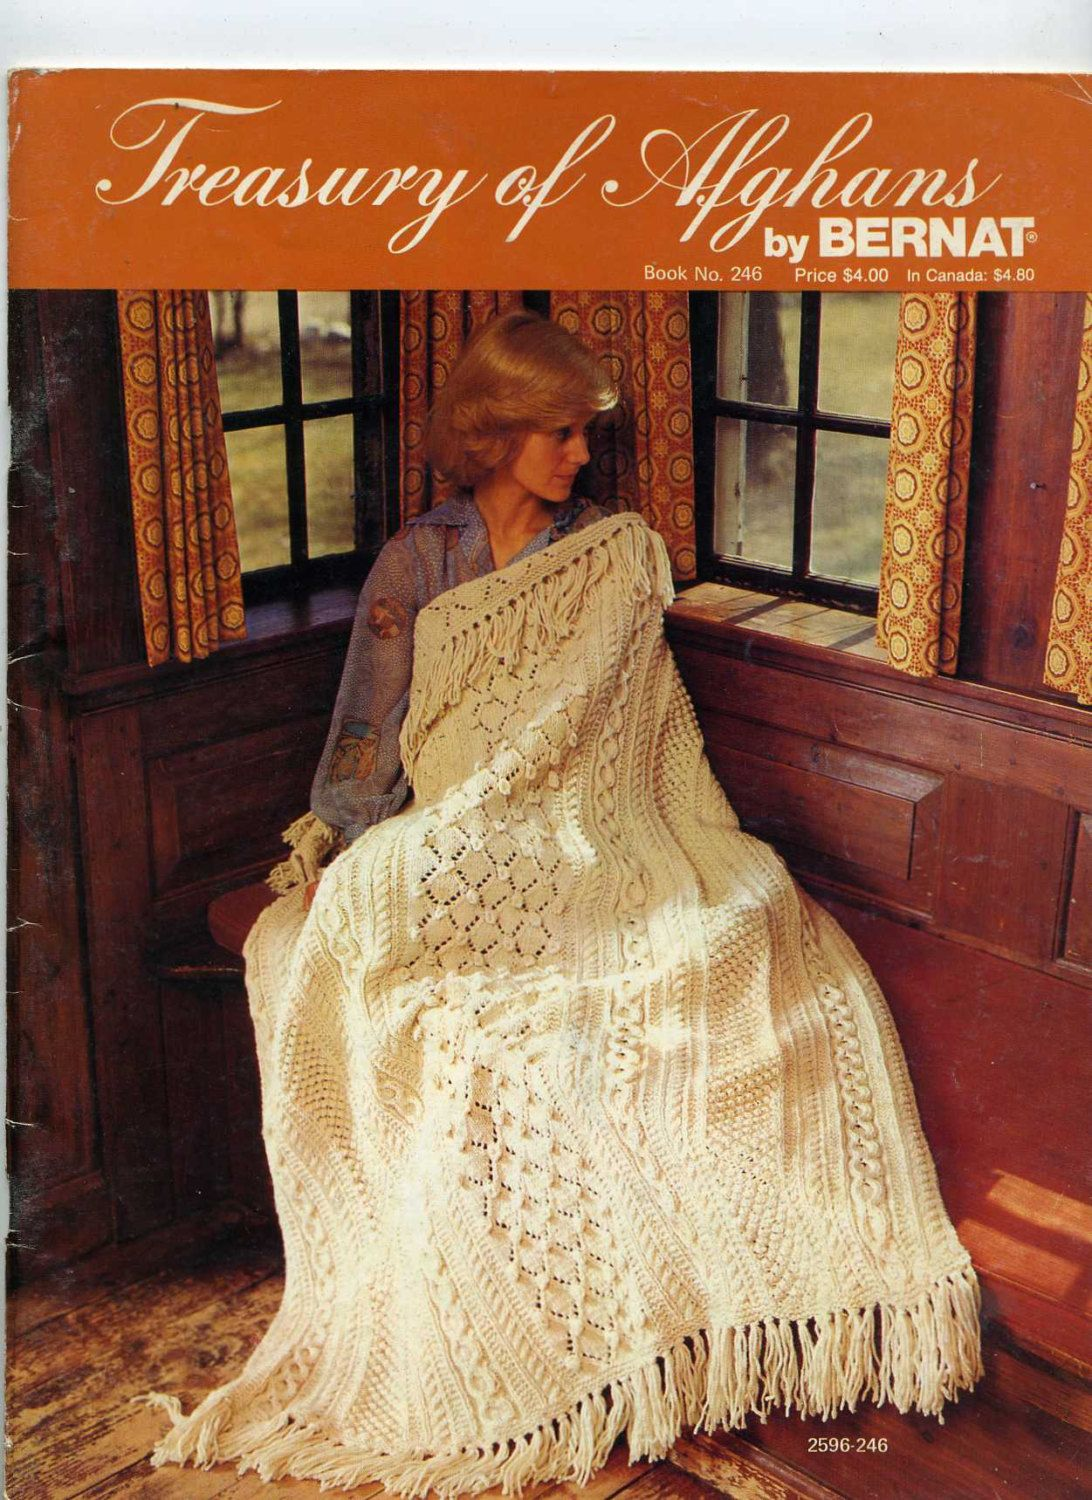 Treasury of Afghans by Bernat / Afghan Knitting by DebsCraftDen